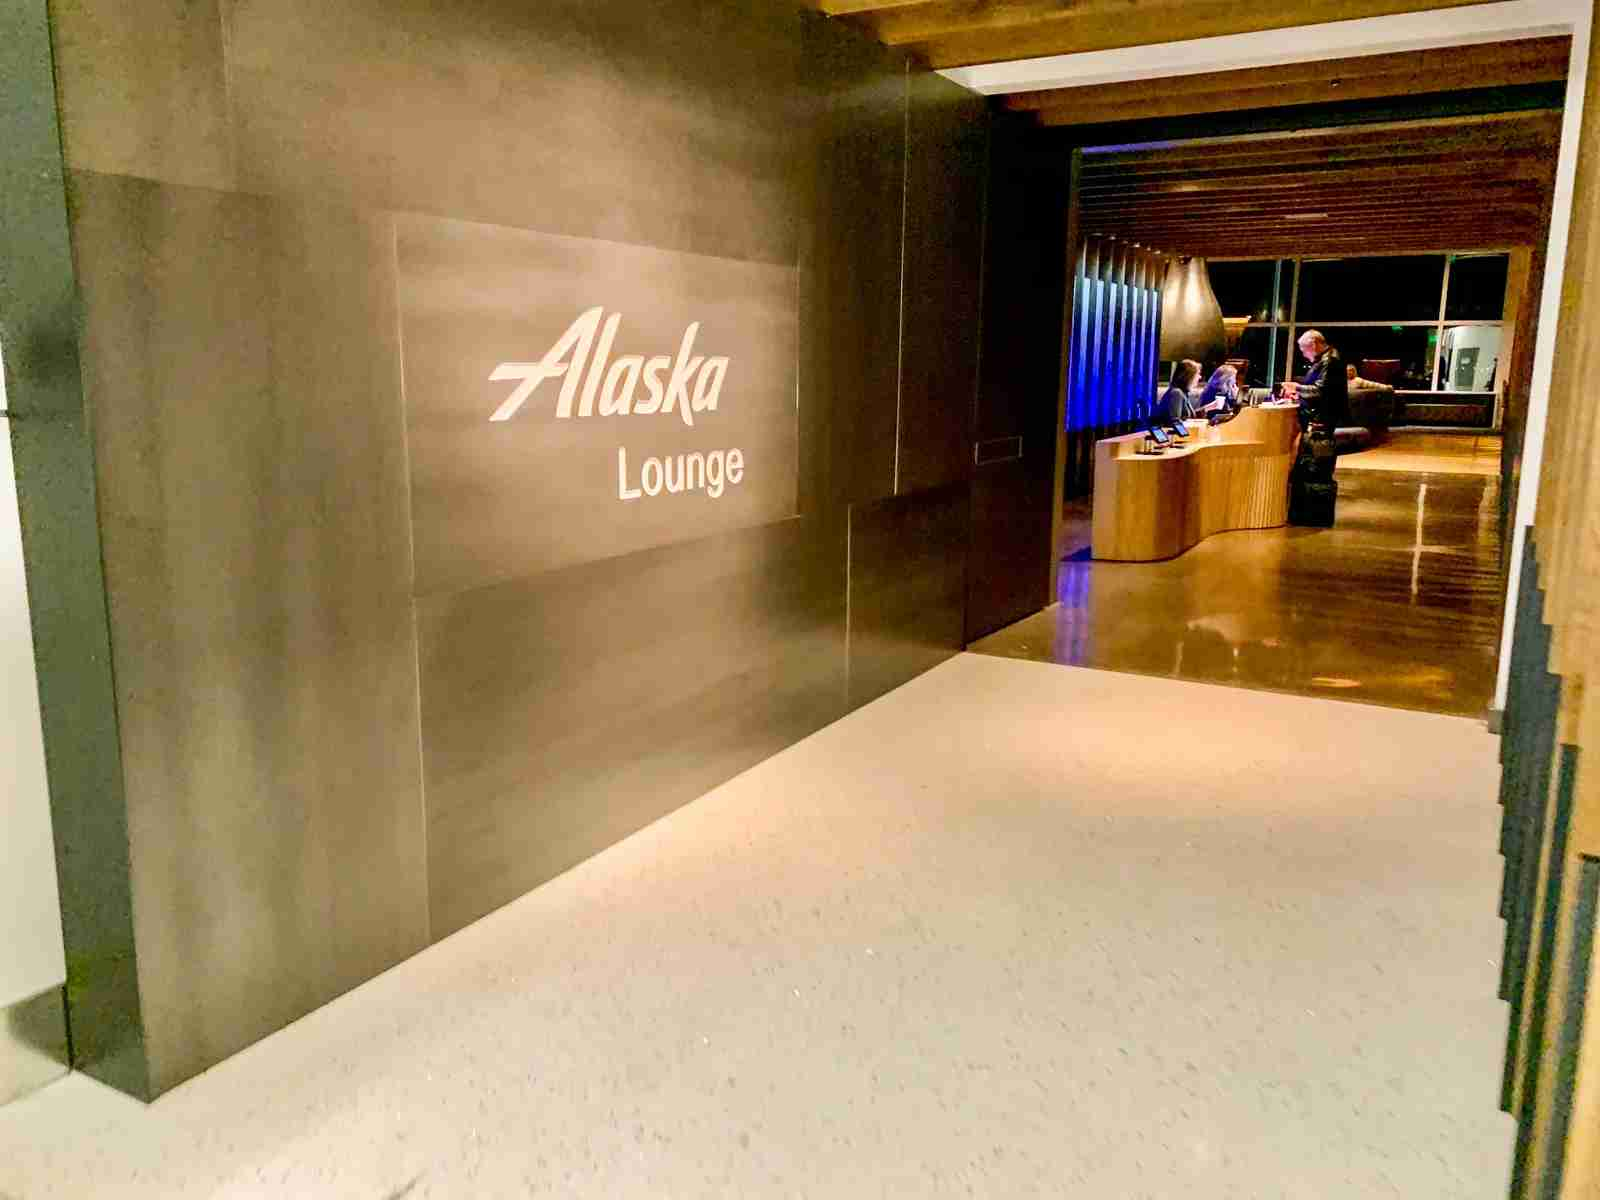 Seattle Alaska Airline New Lounge. (Photo by Clint Henderson/The Point Guy)